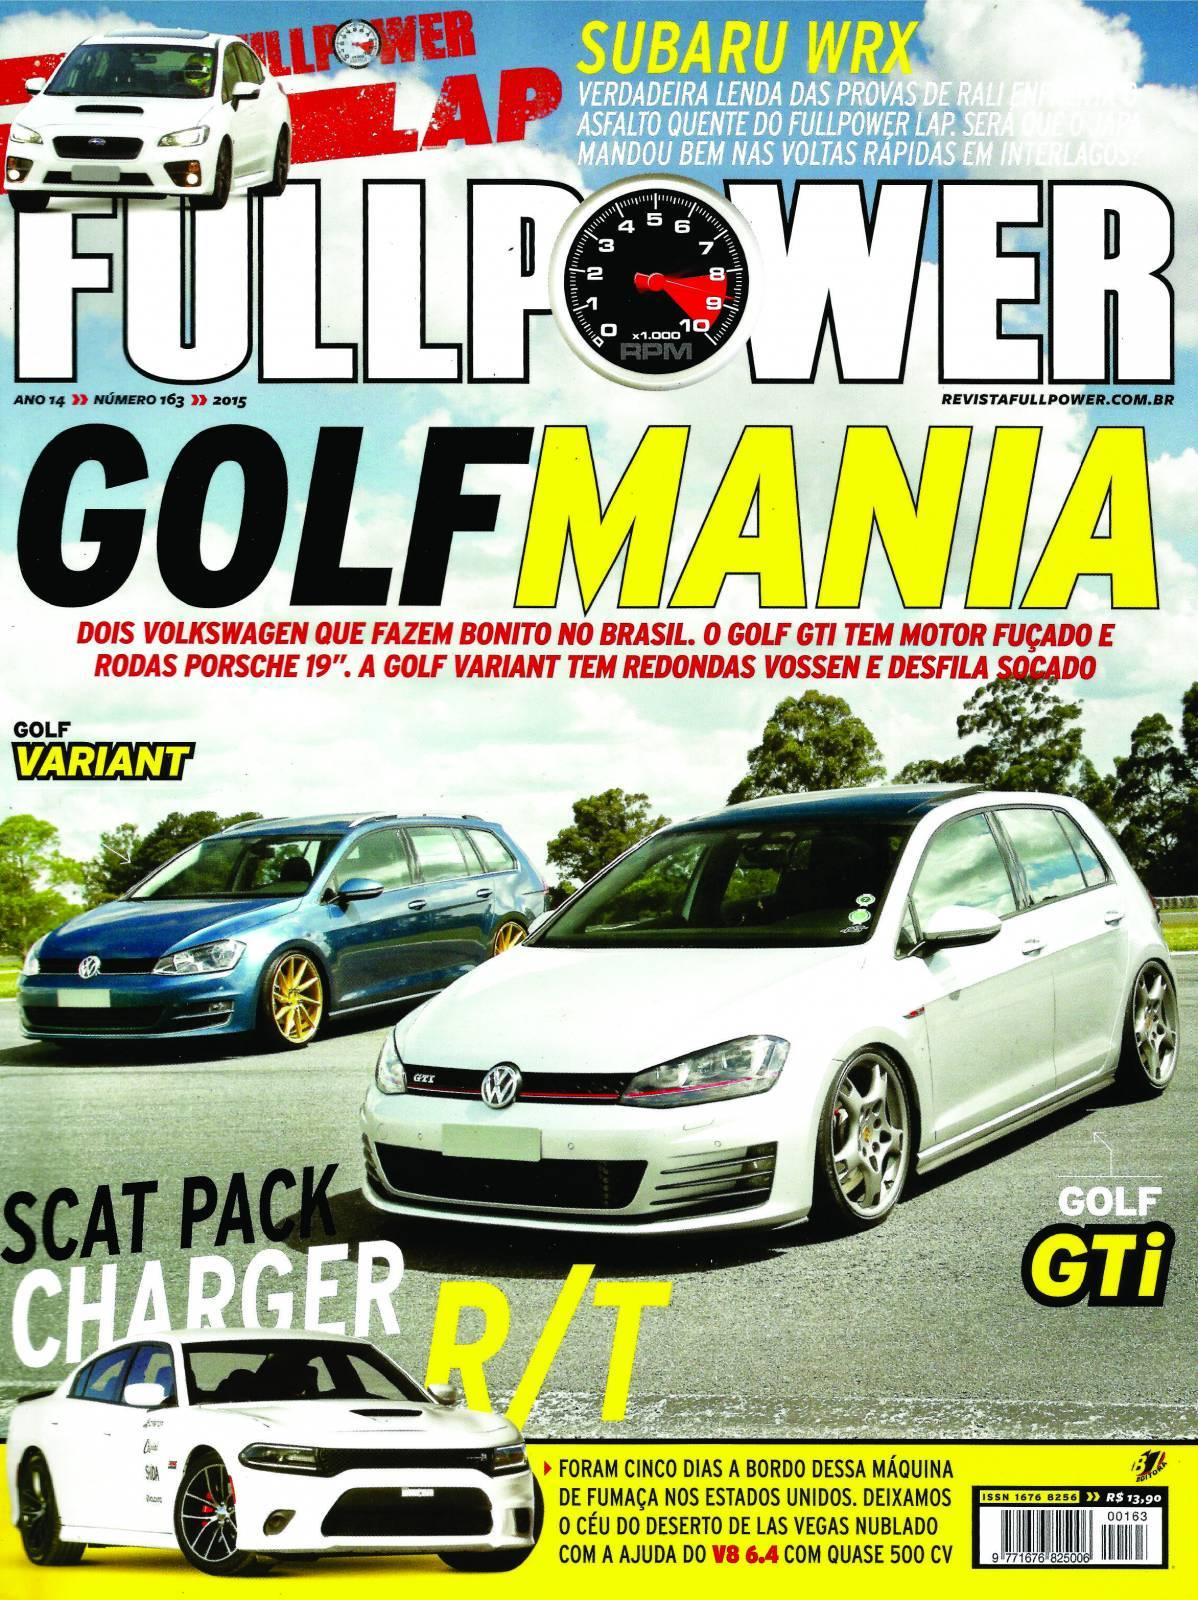 REVISTA FULLPOWER No. 163 ANO 2015 - Loja FullPower